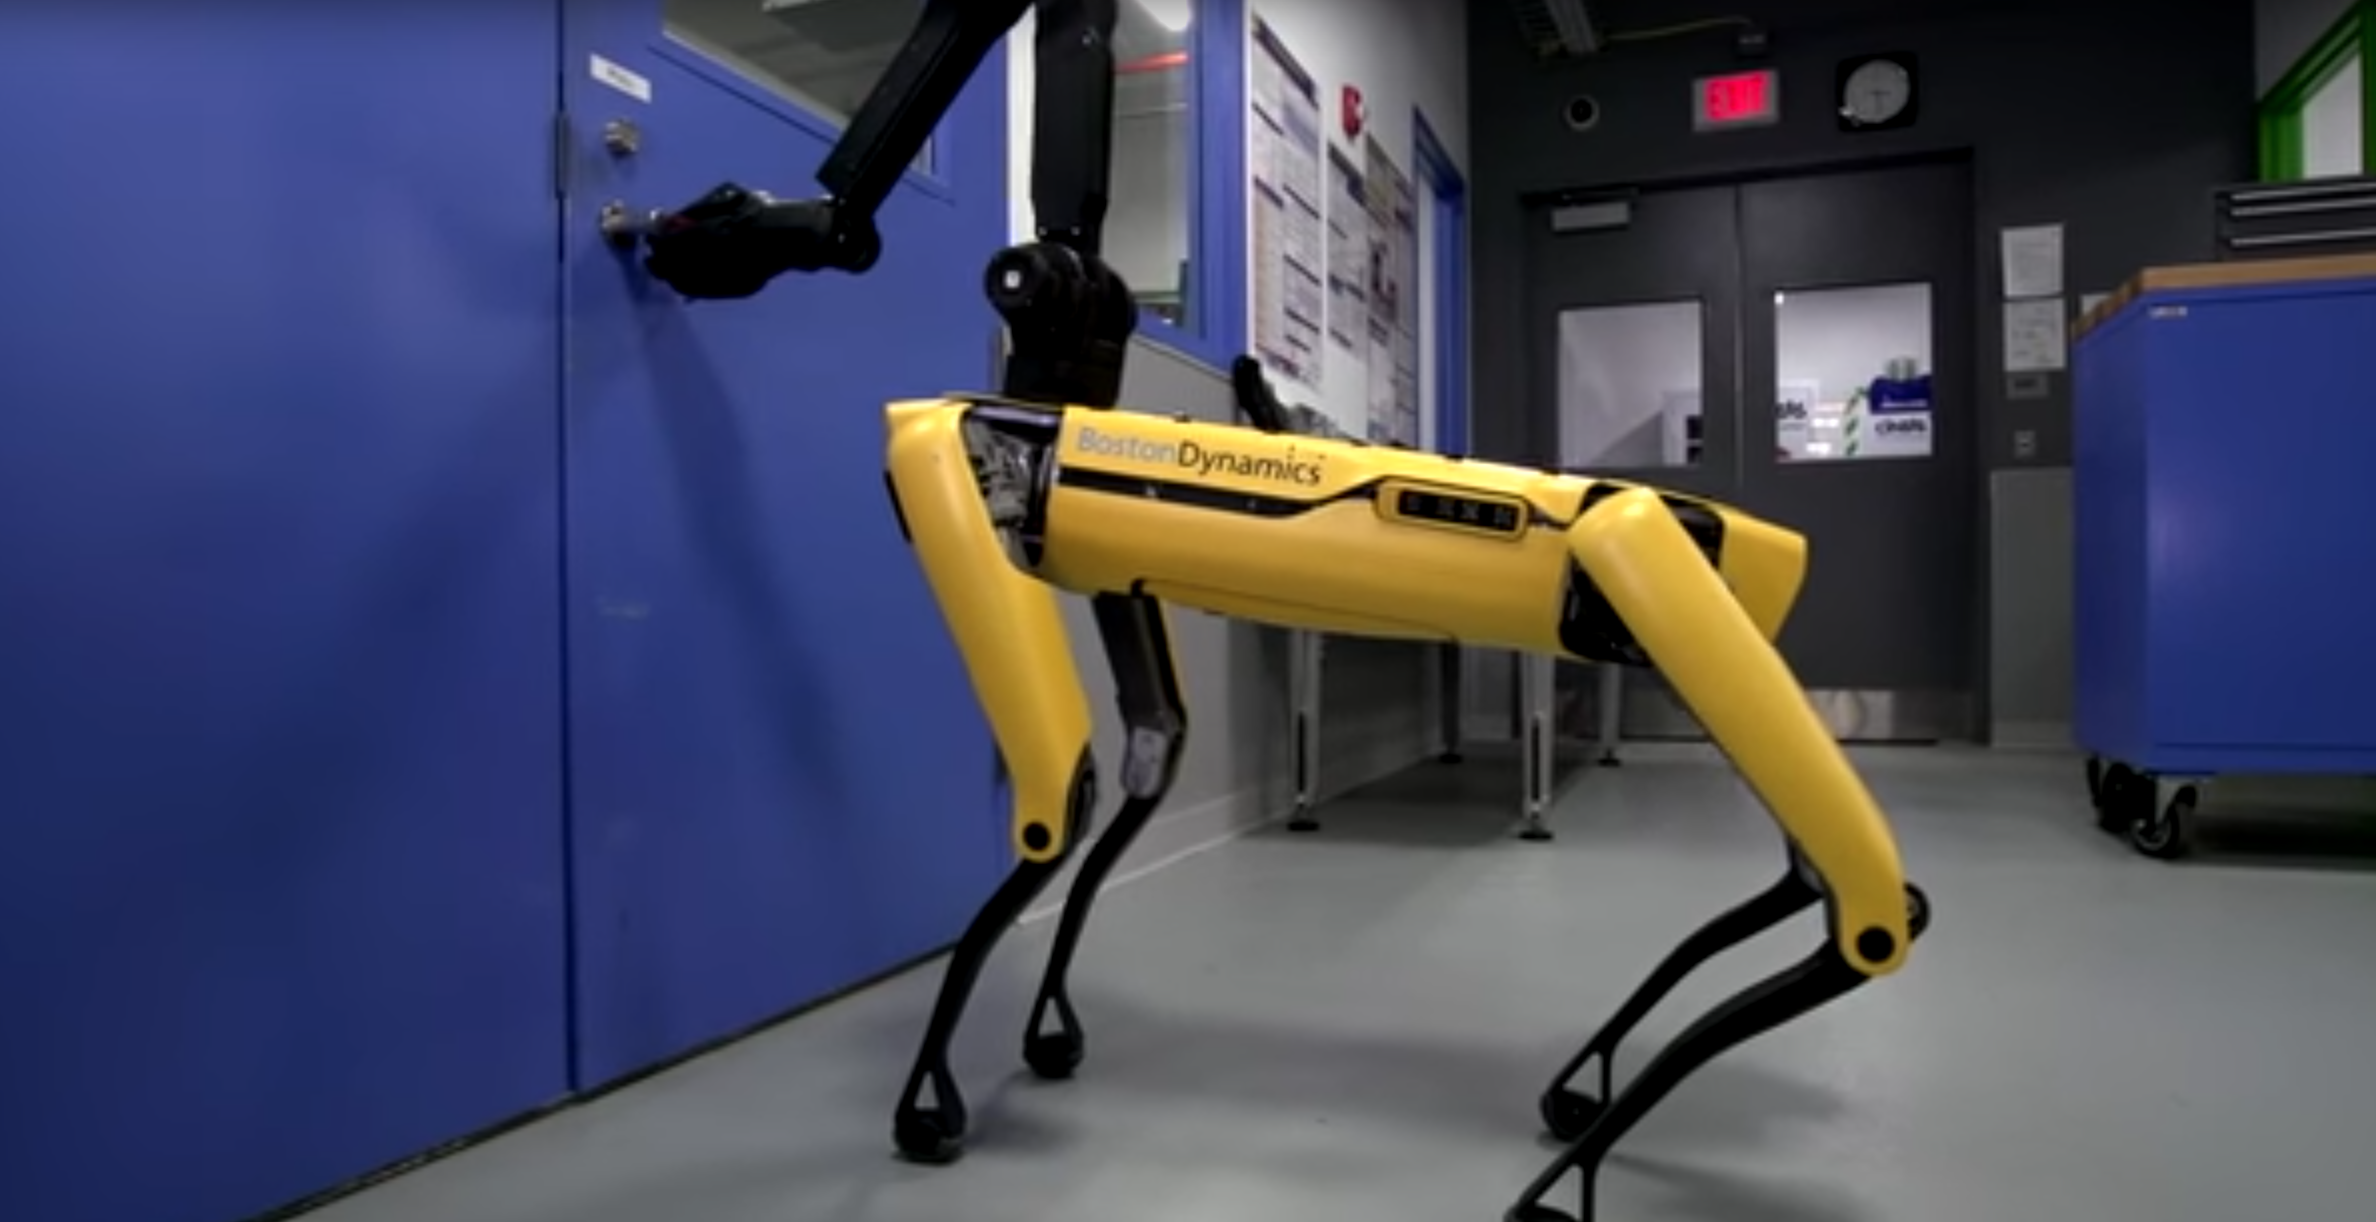 Screen Shot 2018-02-12 at 4.32.39 PM & Boston Dynamics\u0027 newest robot learns to open doors | TechCrunch